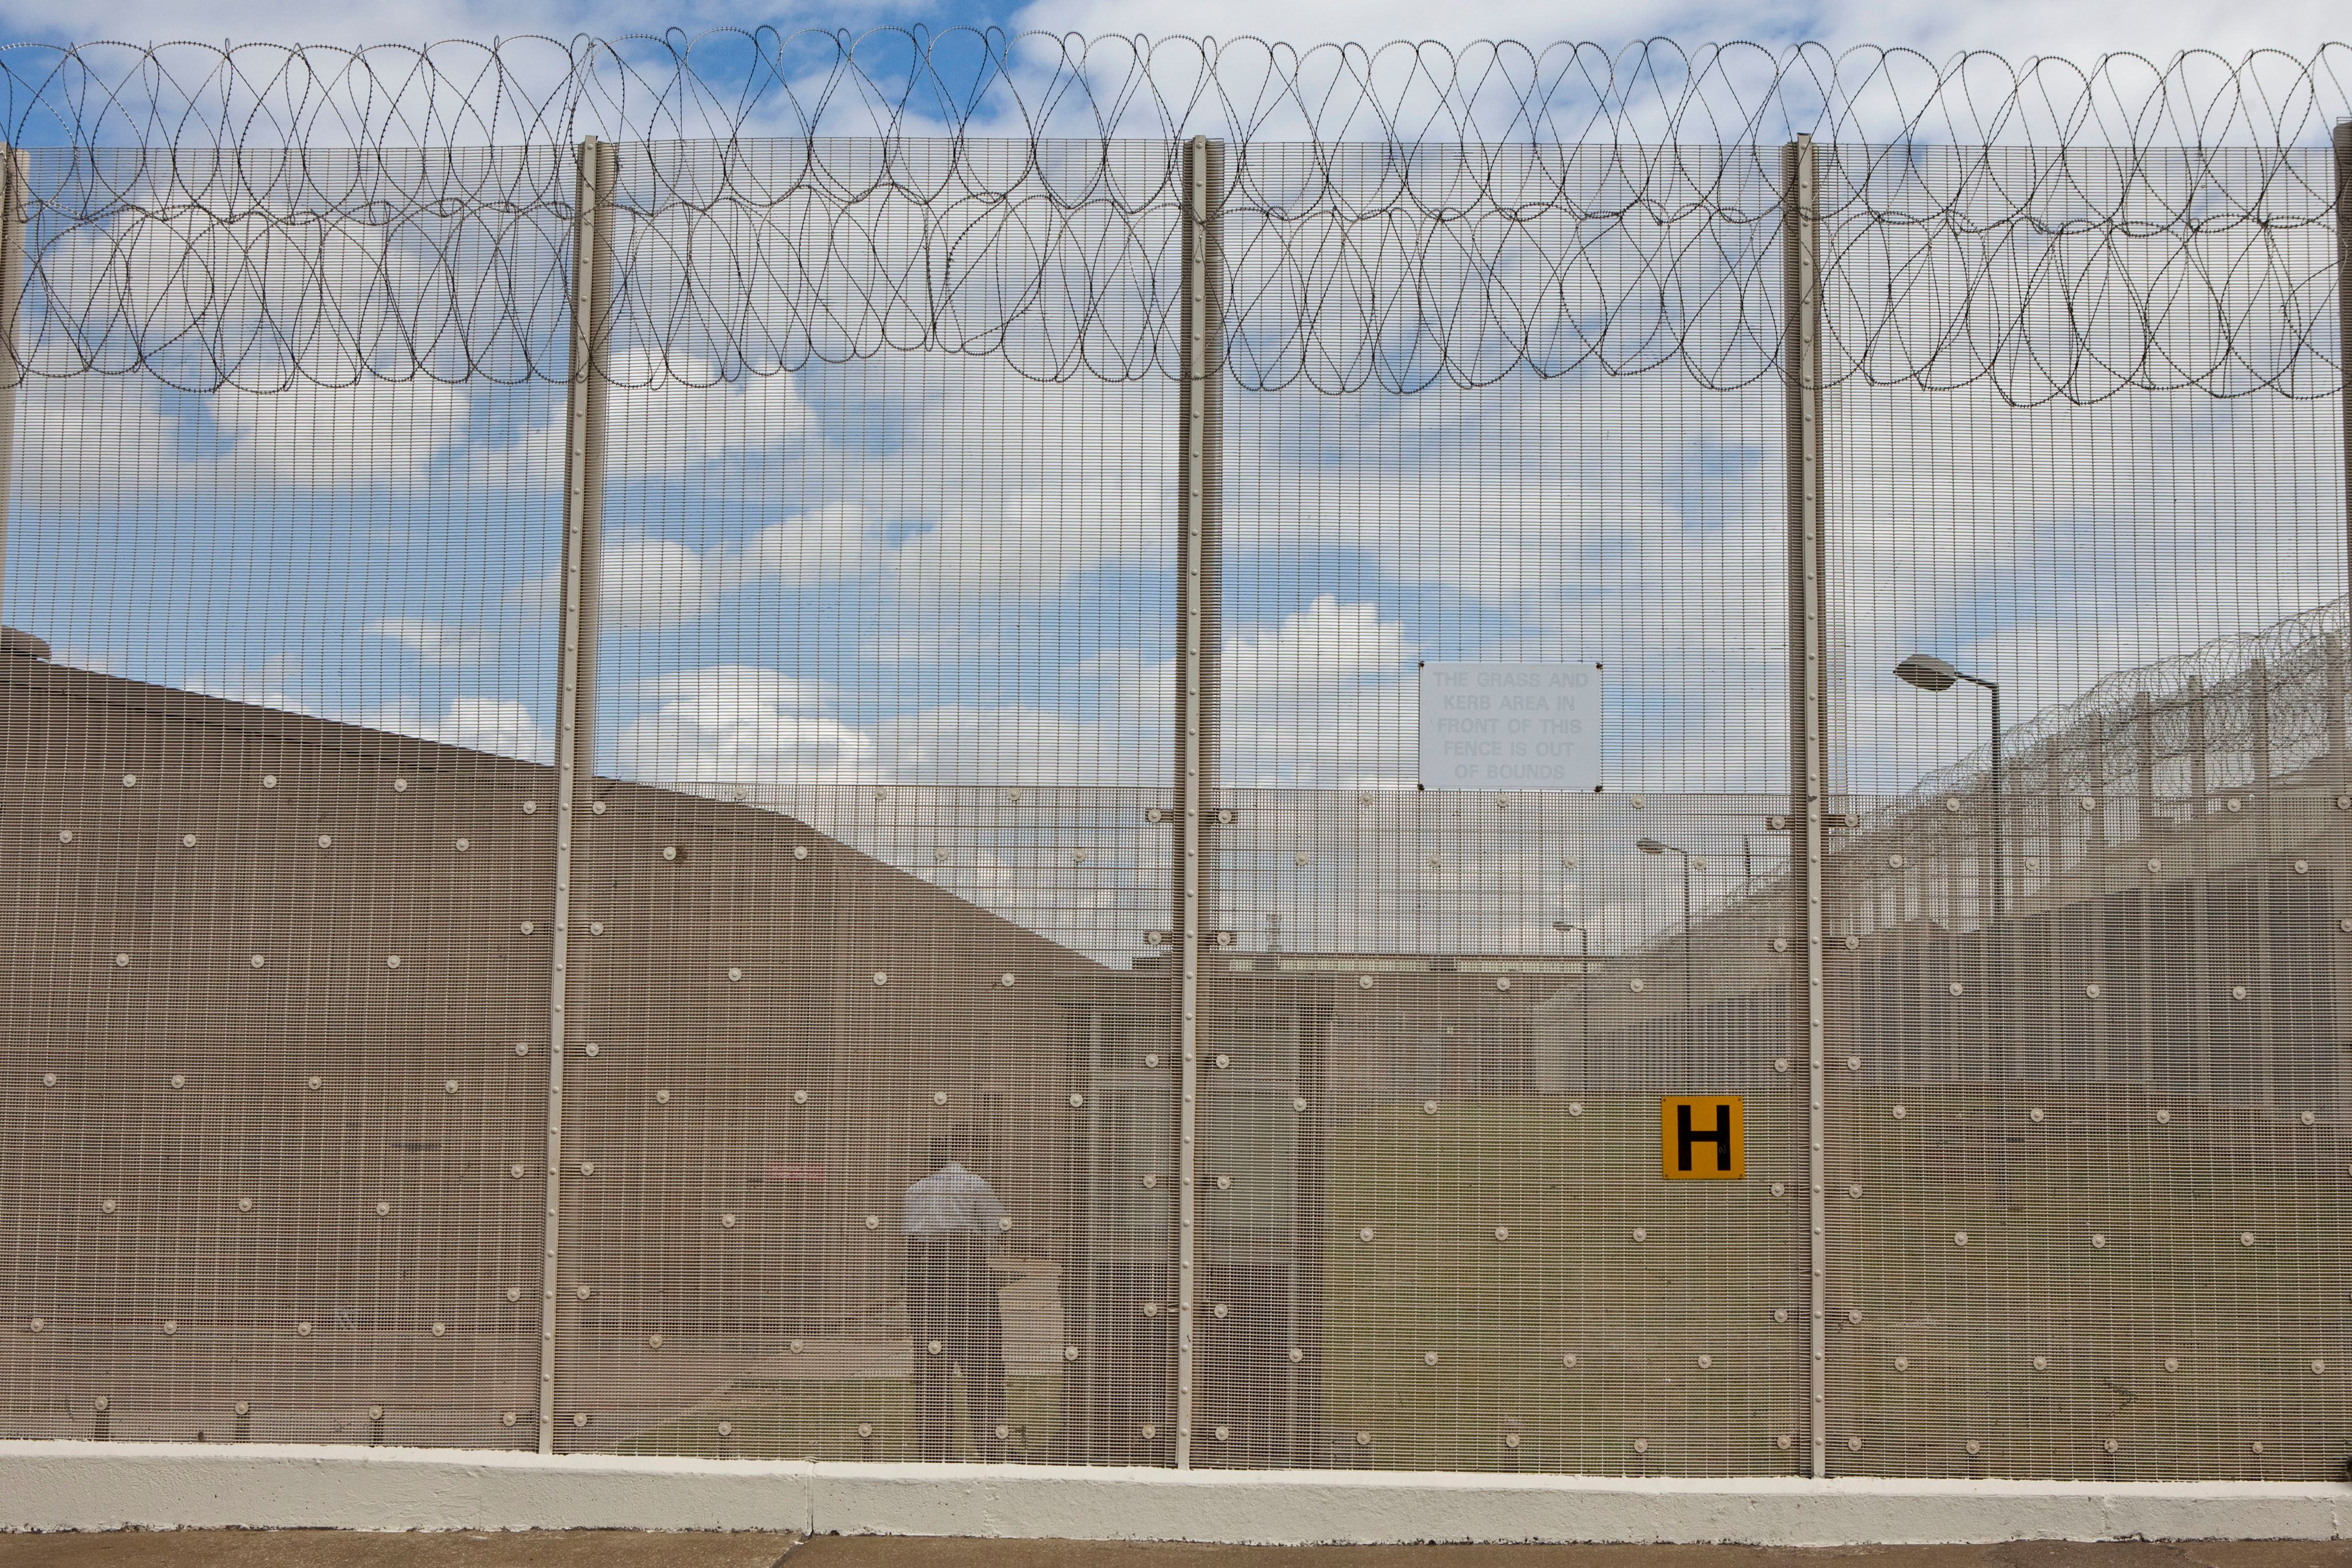 The Prison Governors Association has launched a blistering attack on the MOJ saying a recent increase...